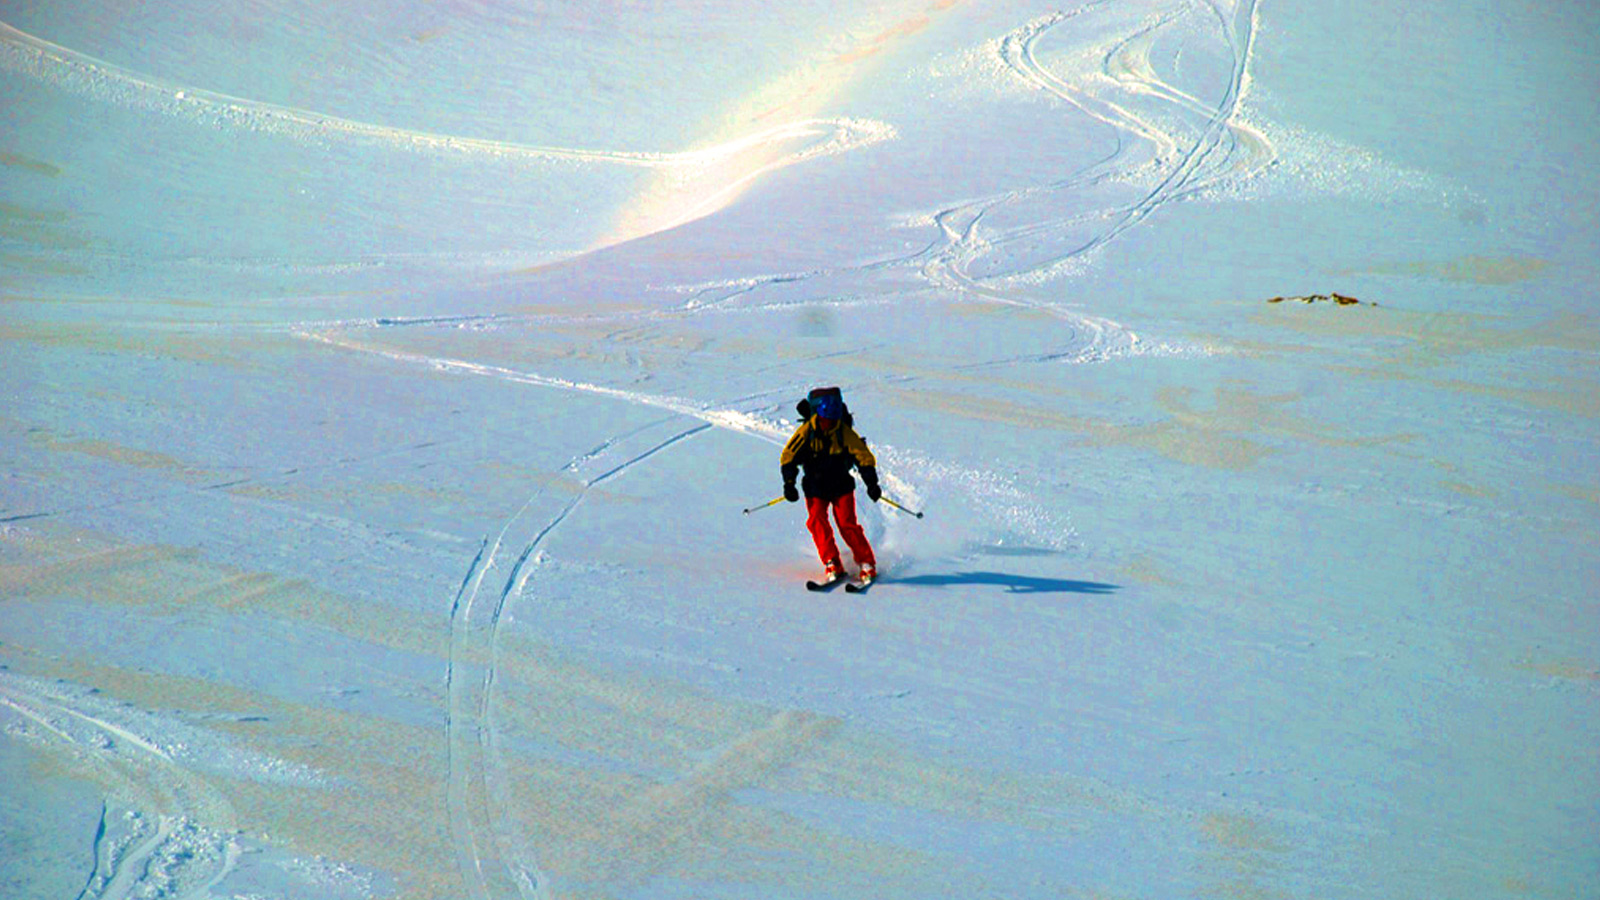 Damavand Ski Tour